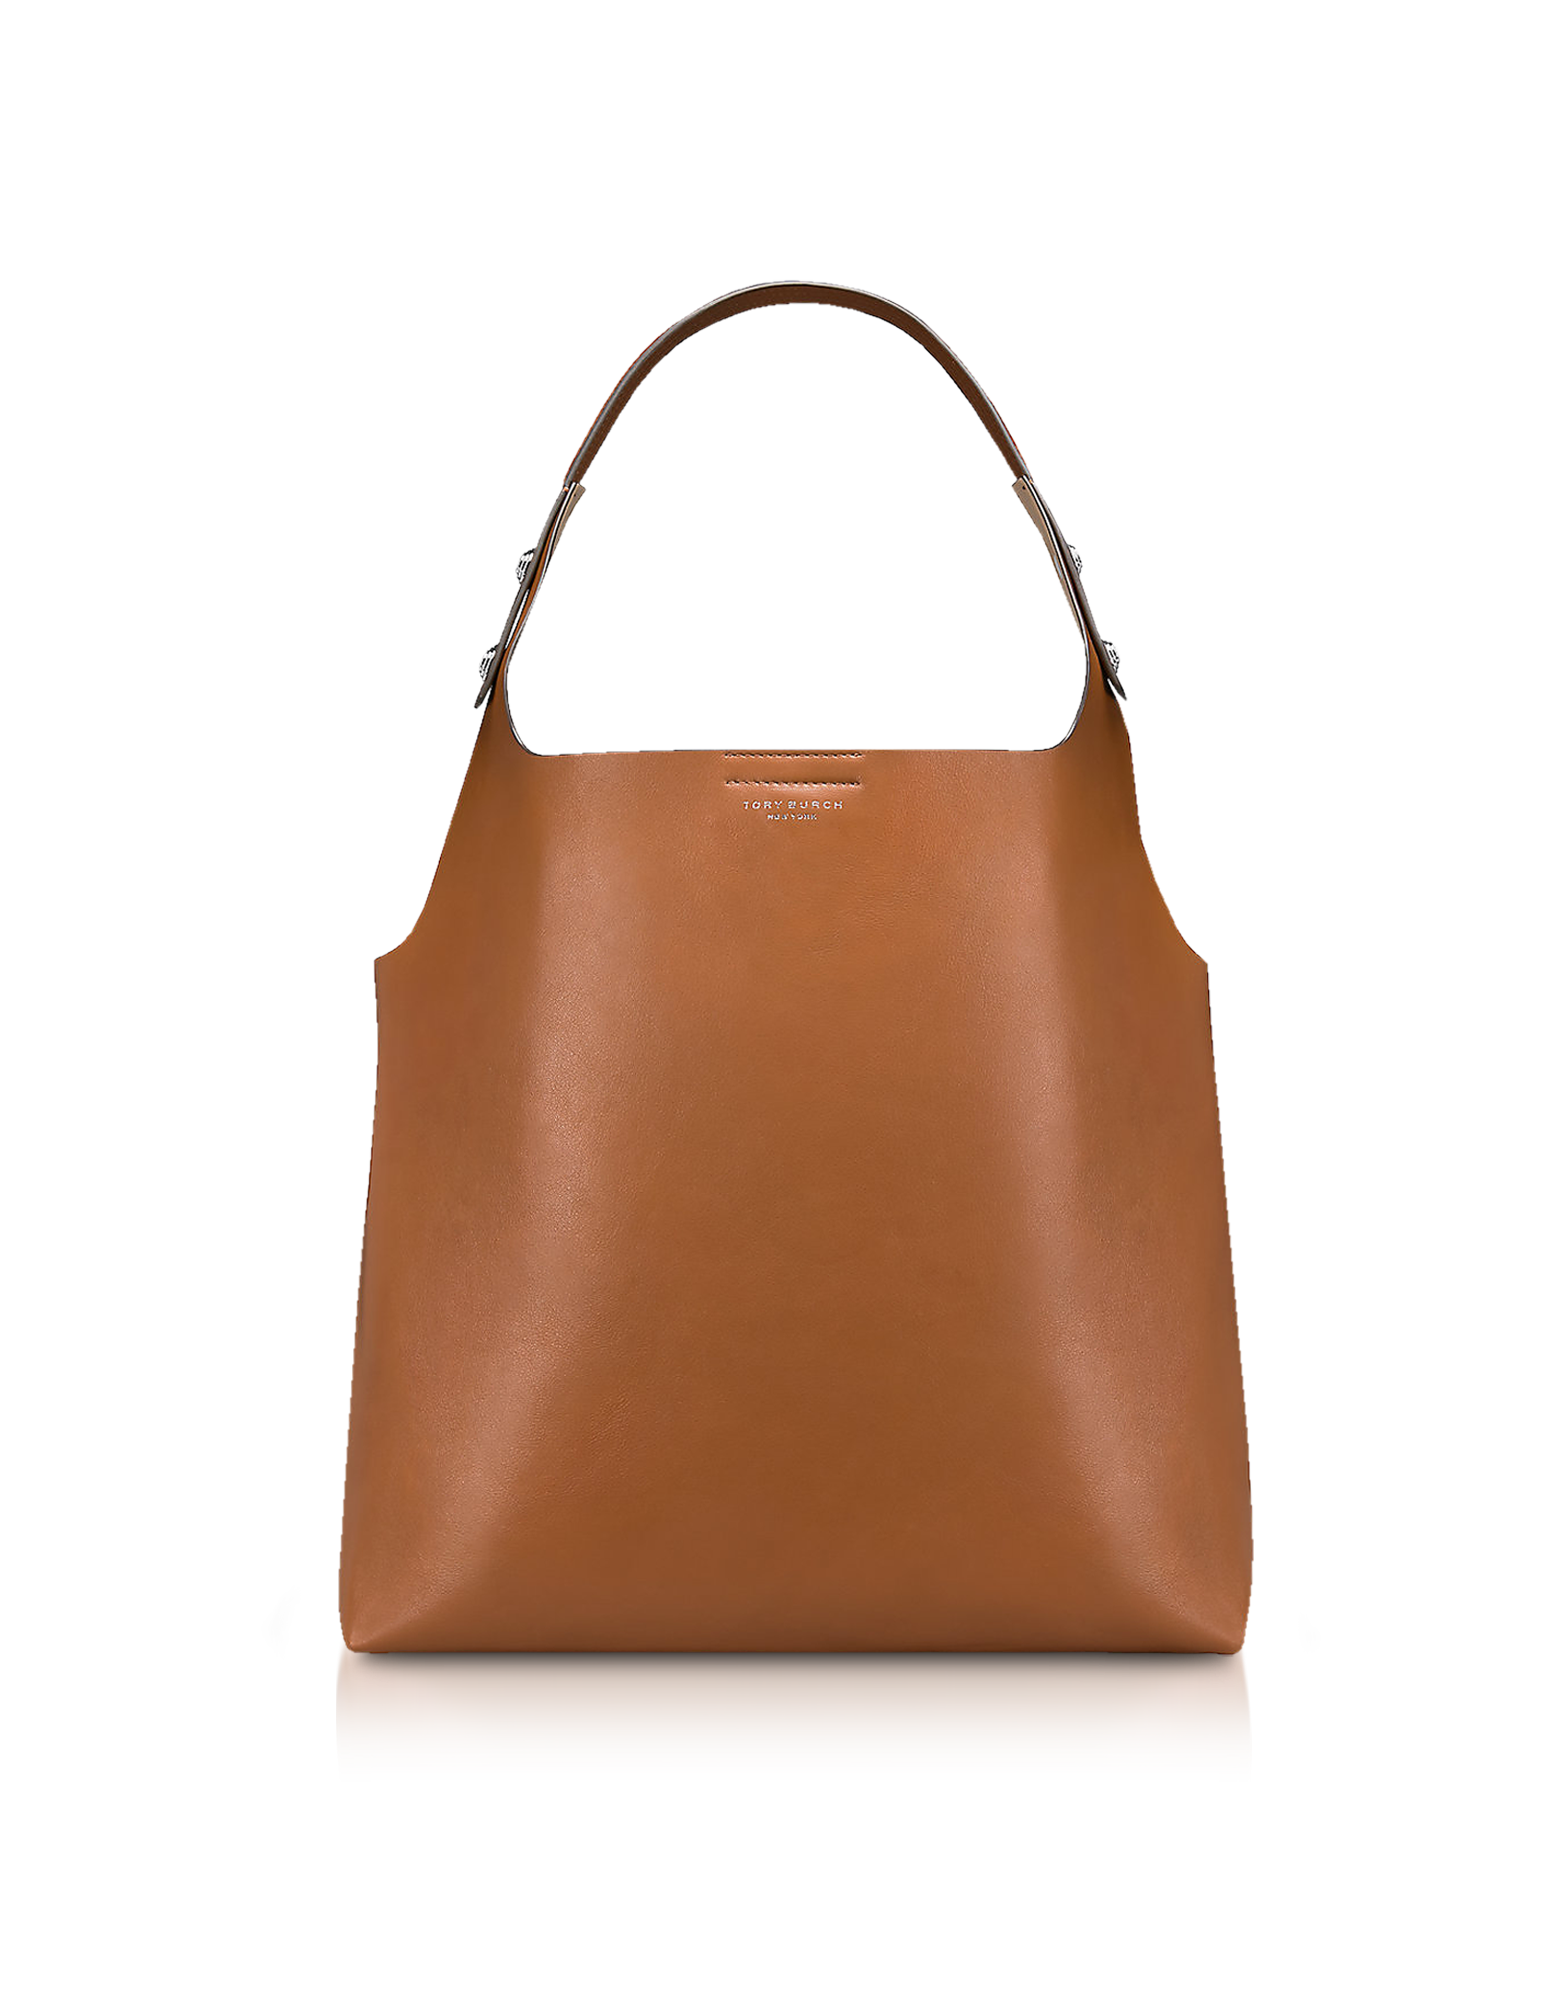 New Arrivals  Tory Burch - Rory Light Umber Leather Tote Bag ... 62a2f23047